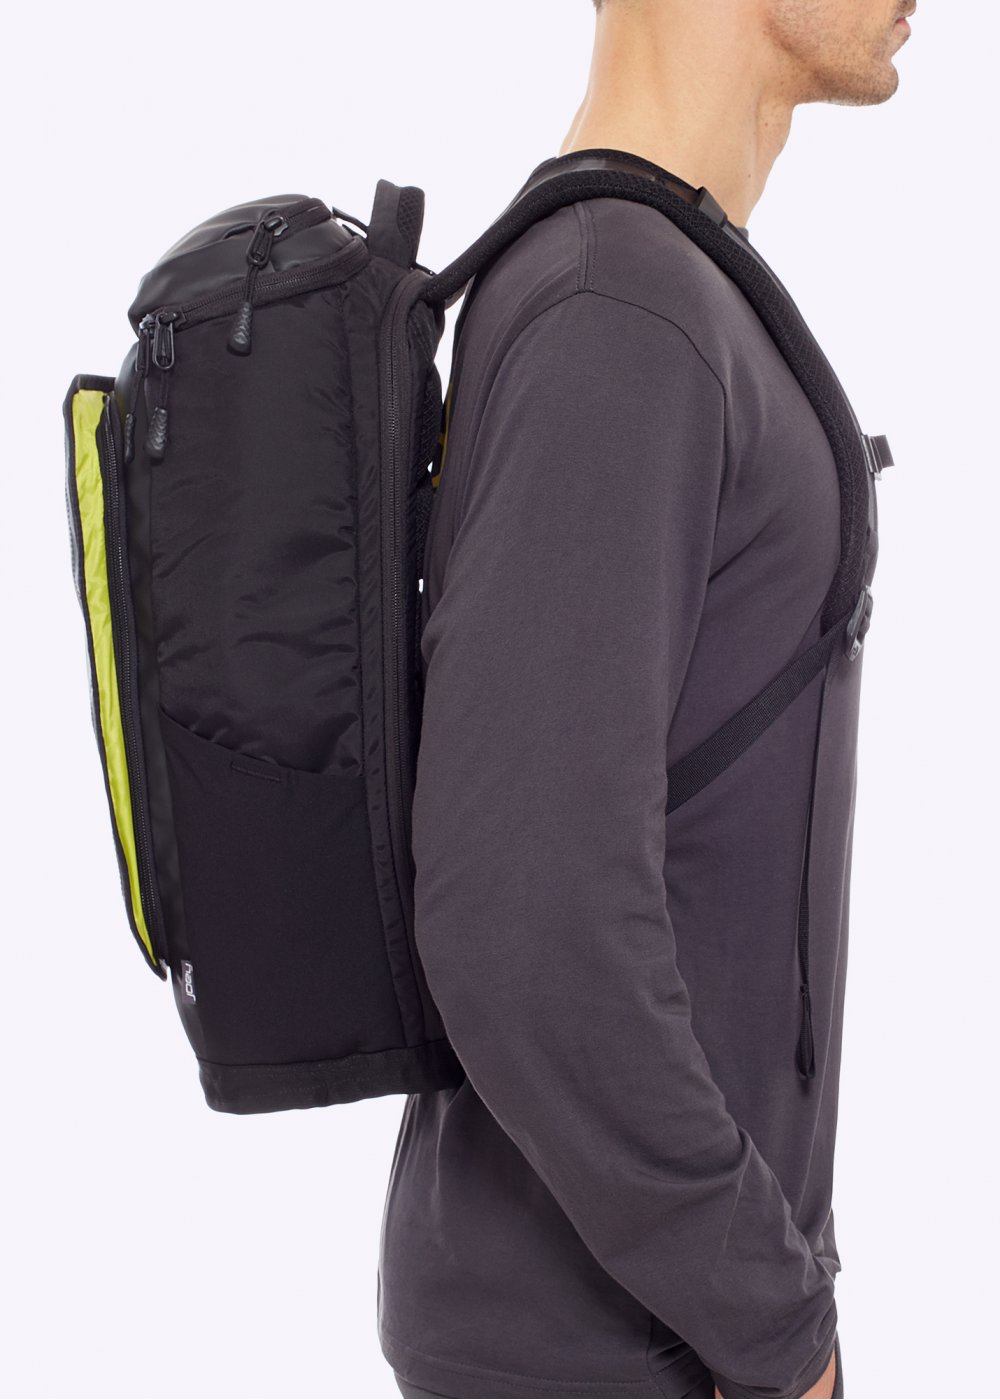 1444143255 64974200 the north face fuse box charged backpack black north face fuse box charged backpack at crackthecode.co